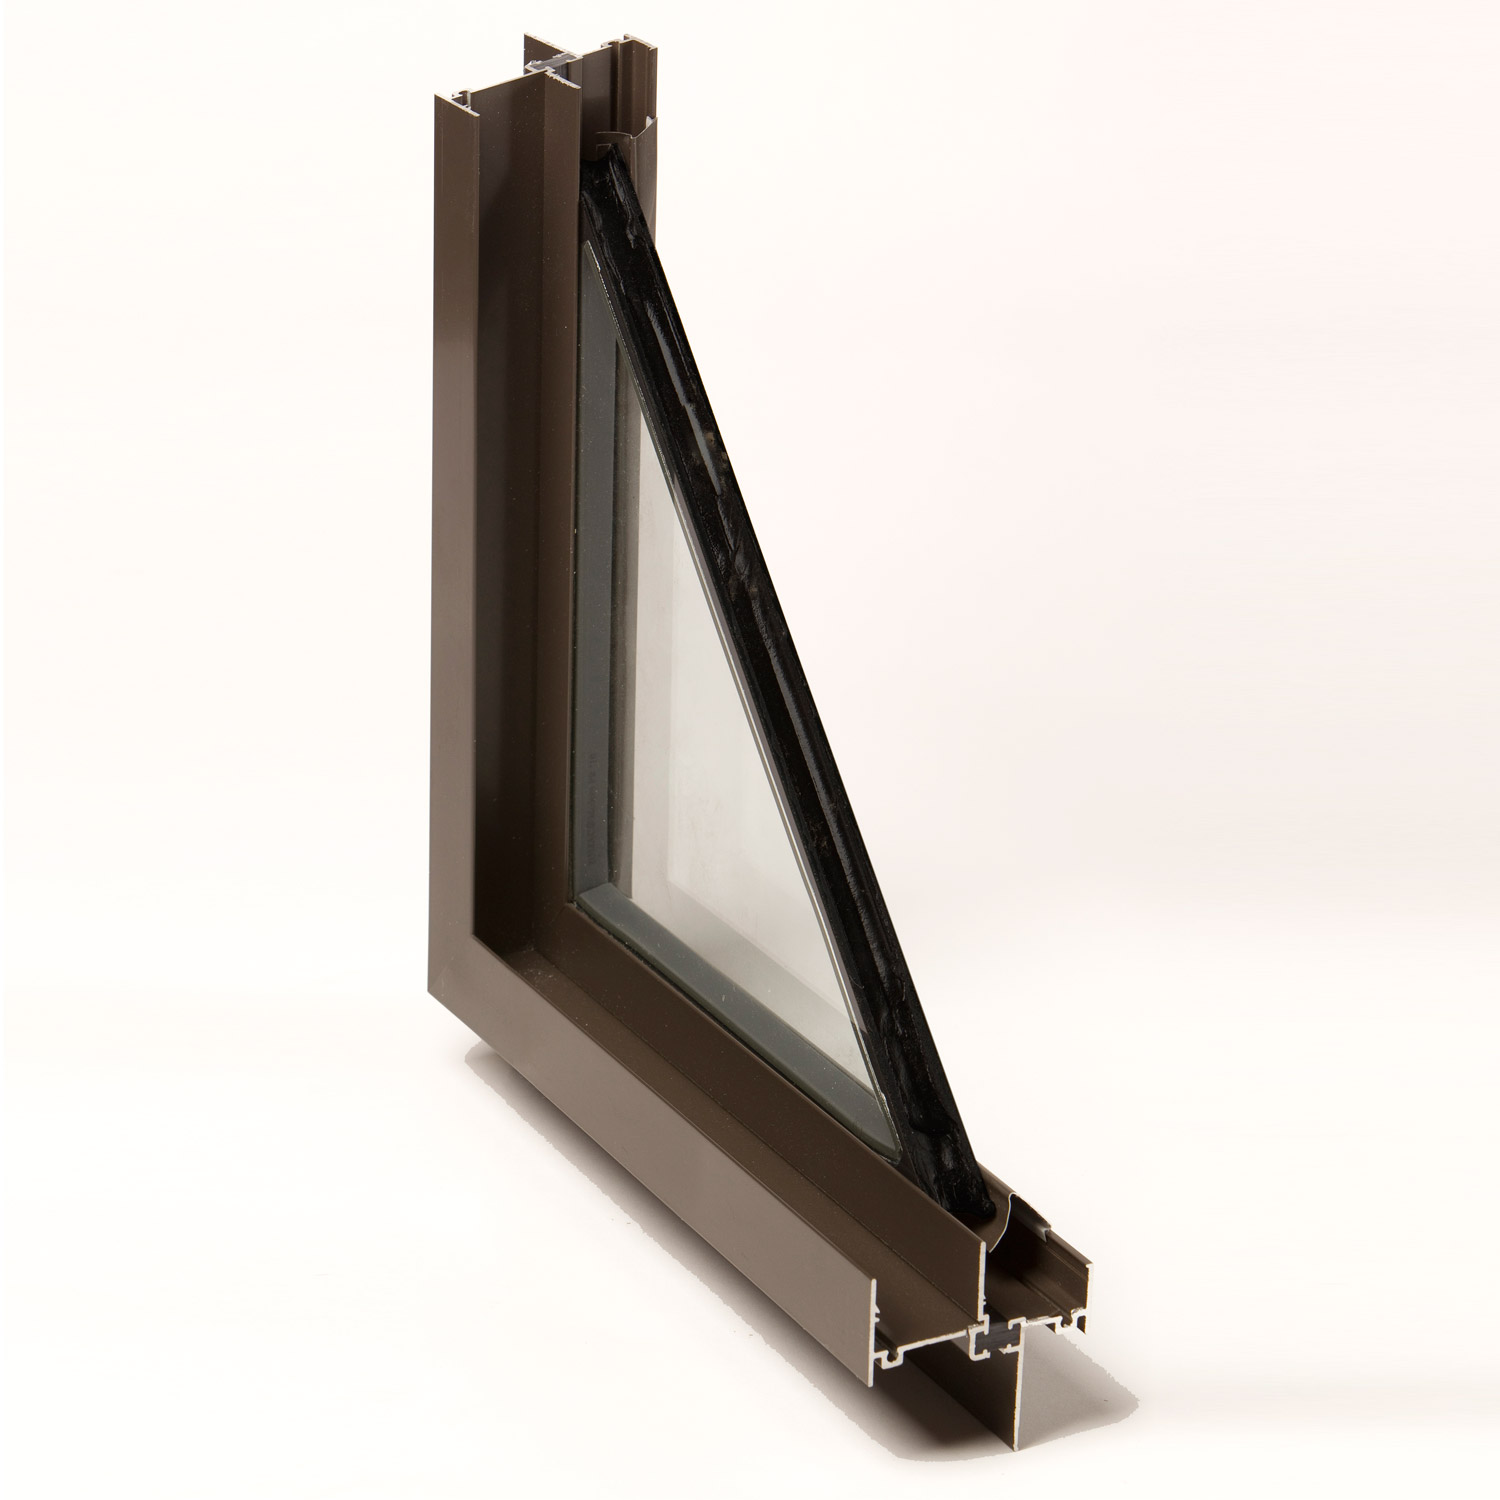 Aluminum Slider Windows : Aluminum window options modern windows building